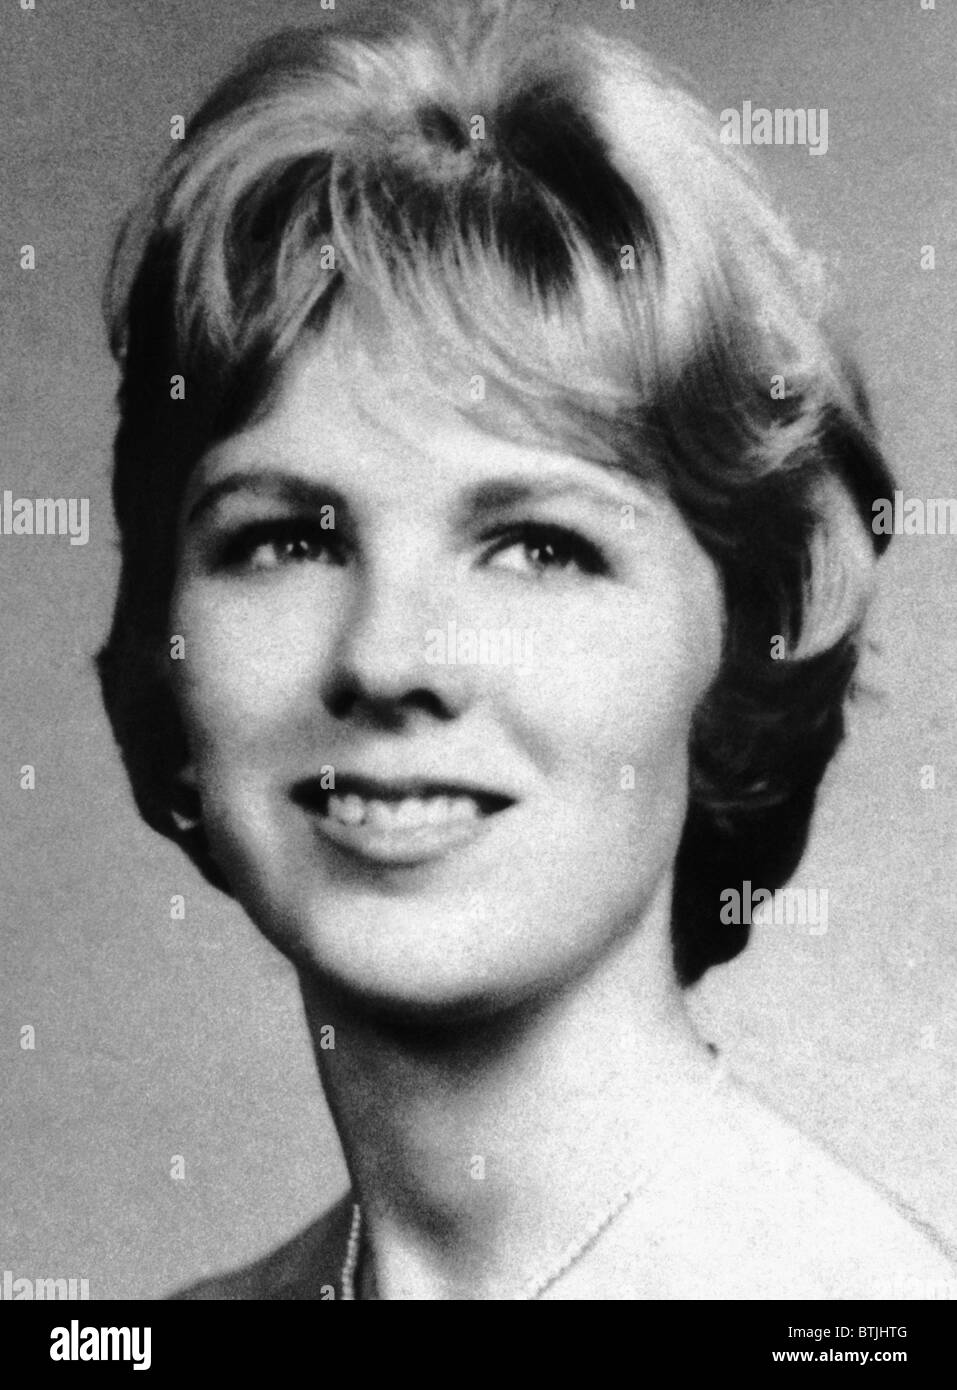 Mary Jo Eustace: Mary Jo Kopechne, Campaign Worker Who Was Killed In An